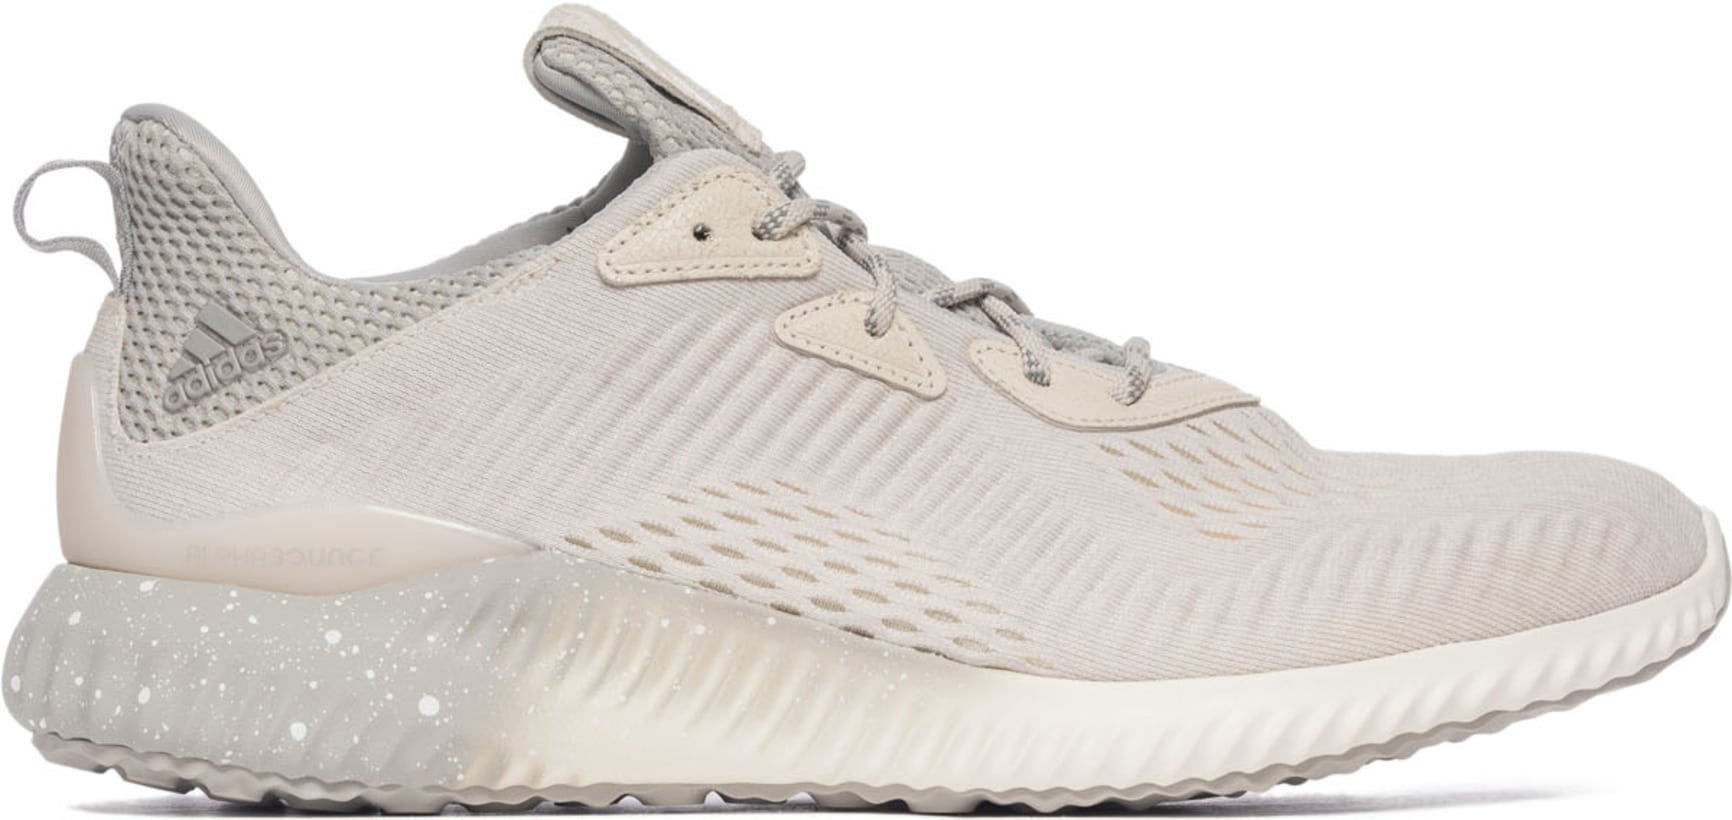 b45ebcb84 adidas Originals. adidas x Reigning Champ Alphabounce 1 - Core White Footwear  White